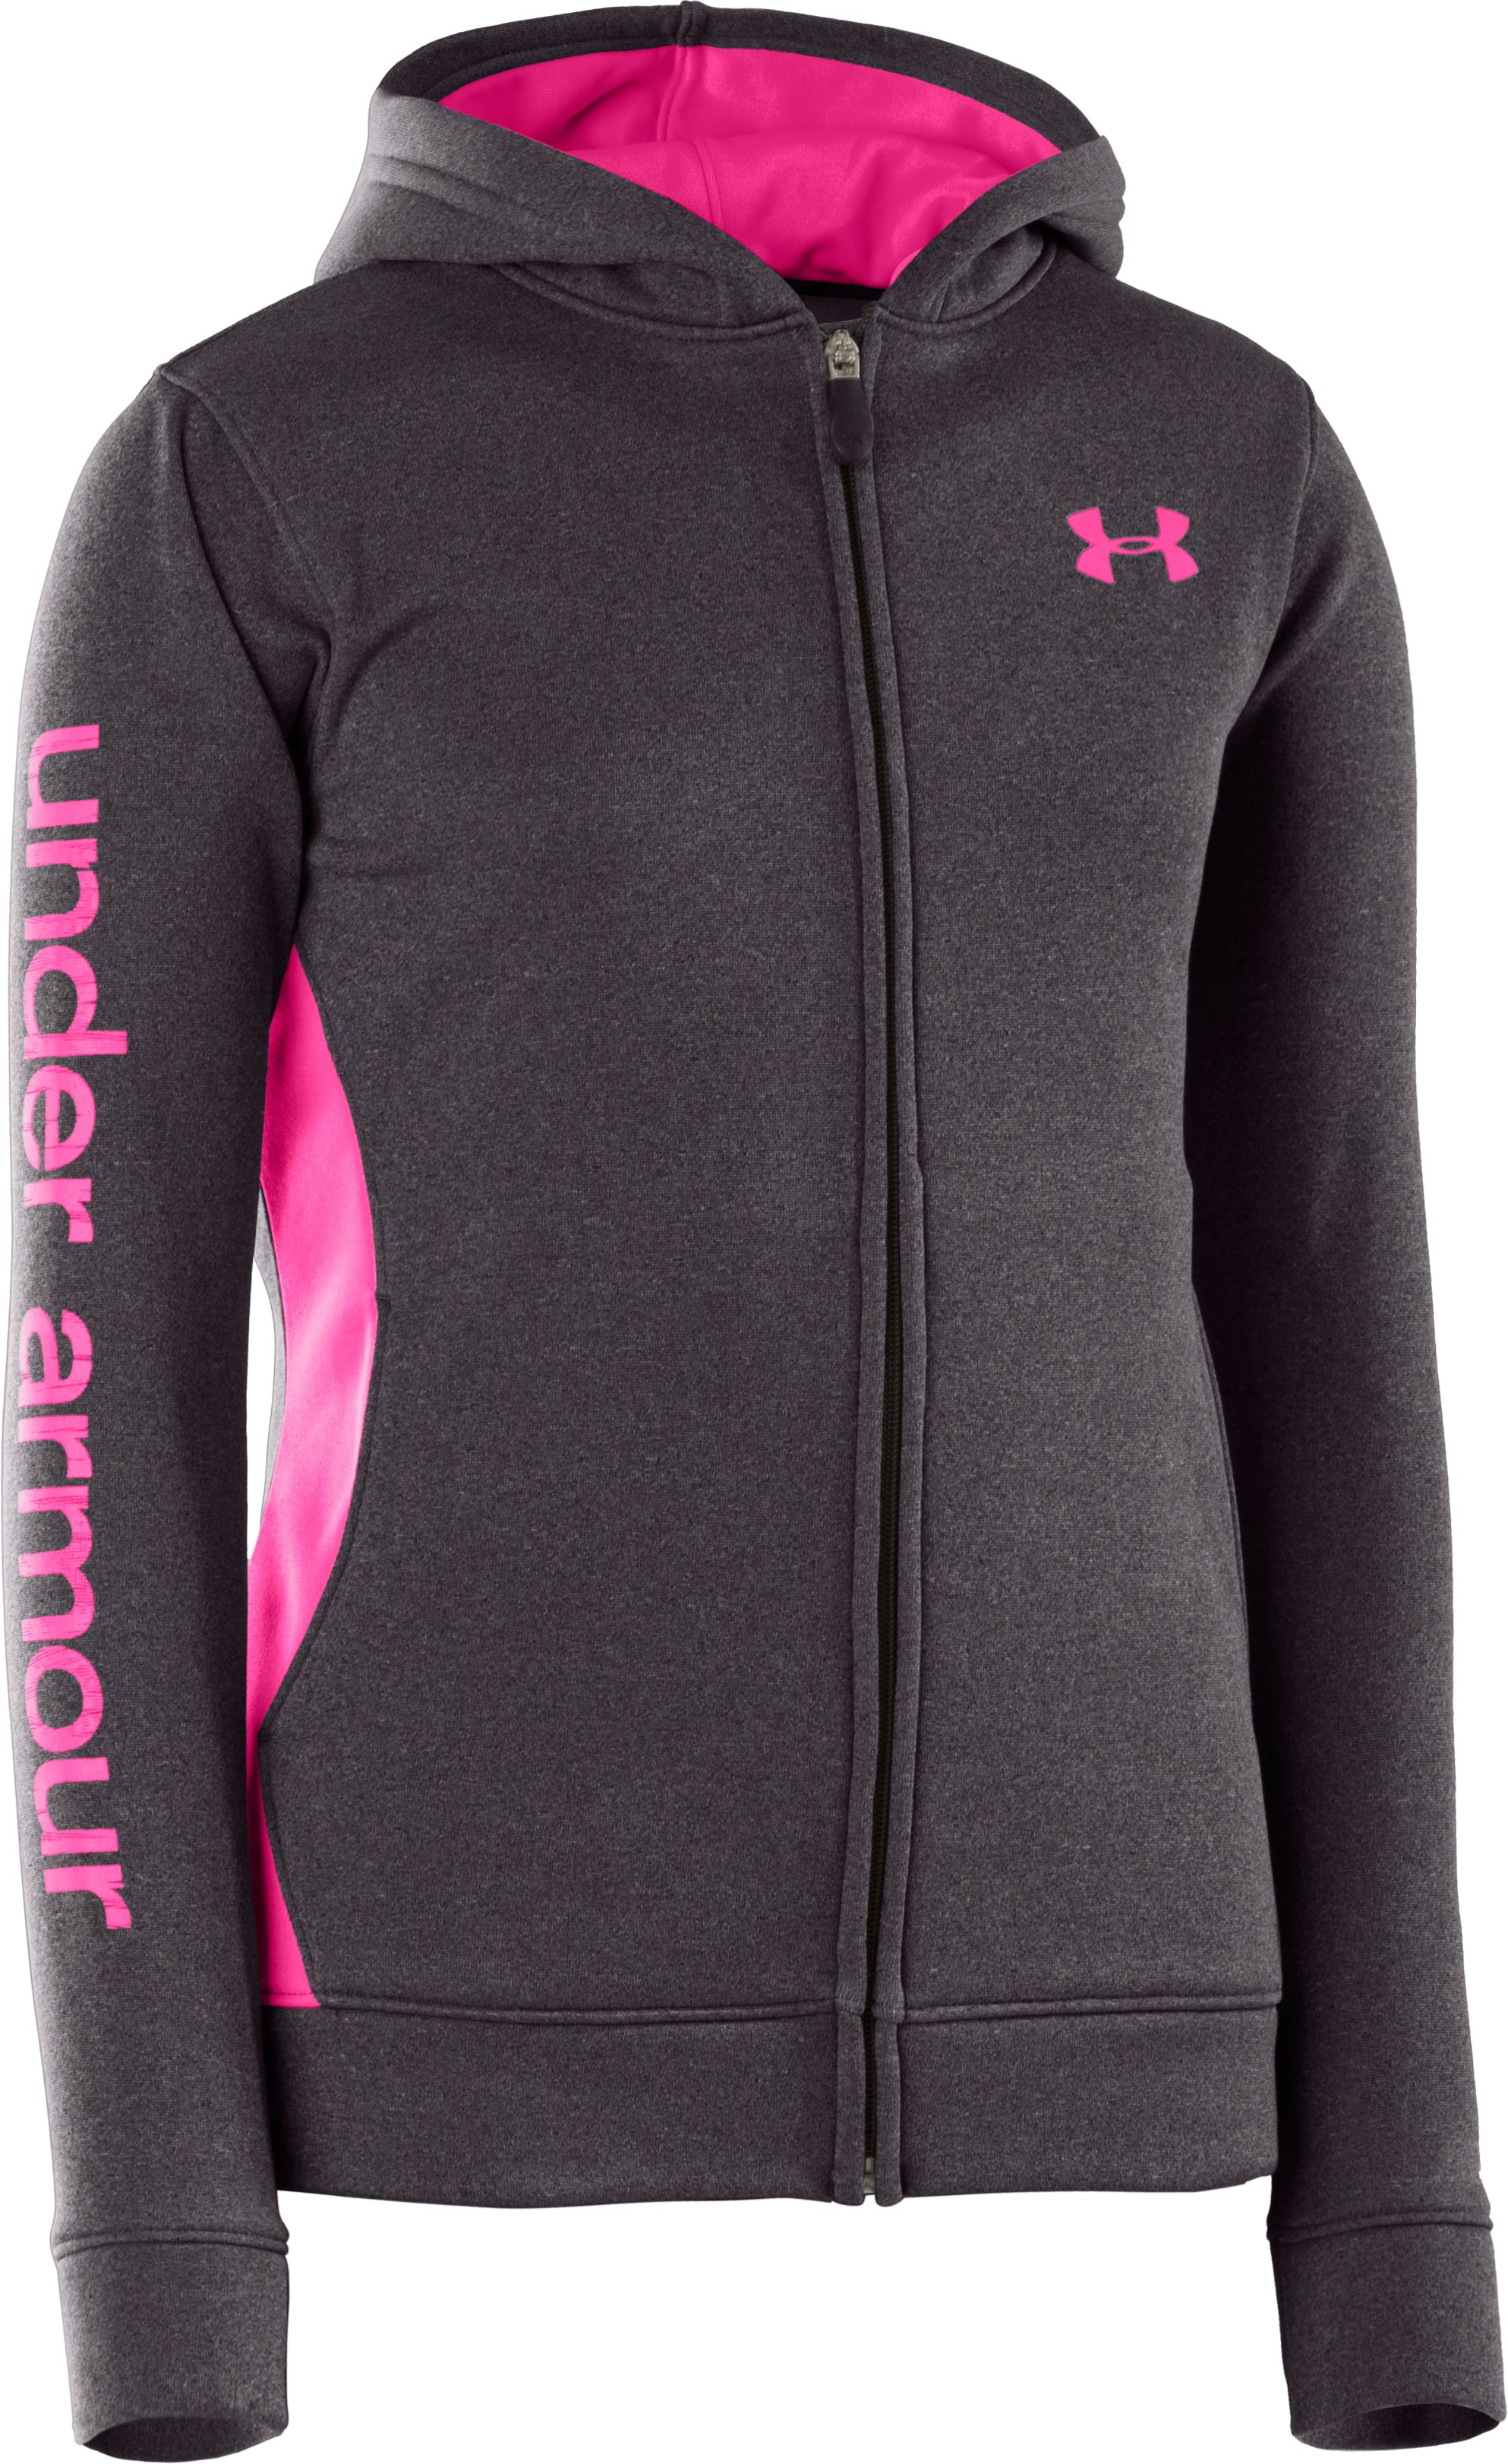 Girls' Armour® Fleece Full Zip Hoodie, Carbon Heather